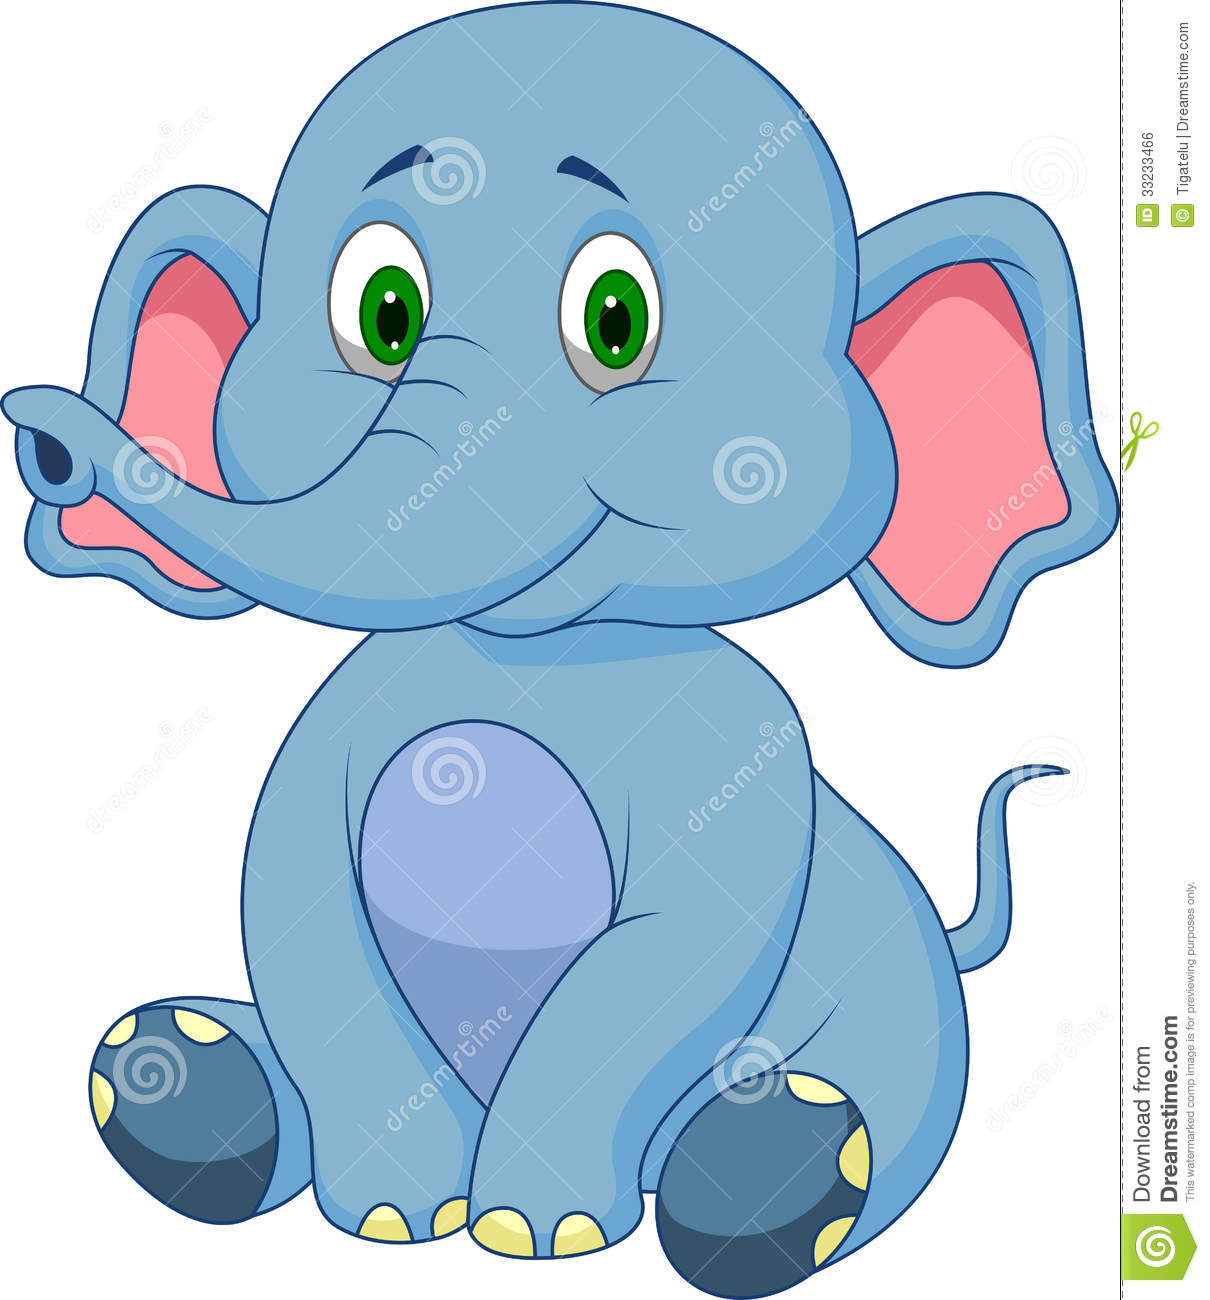 cartoon elephant wallpaper - photo #17